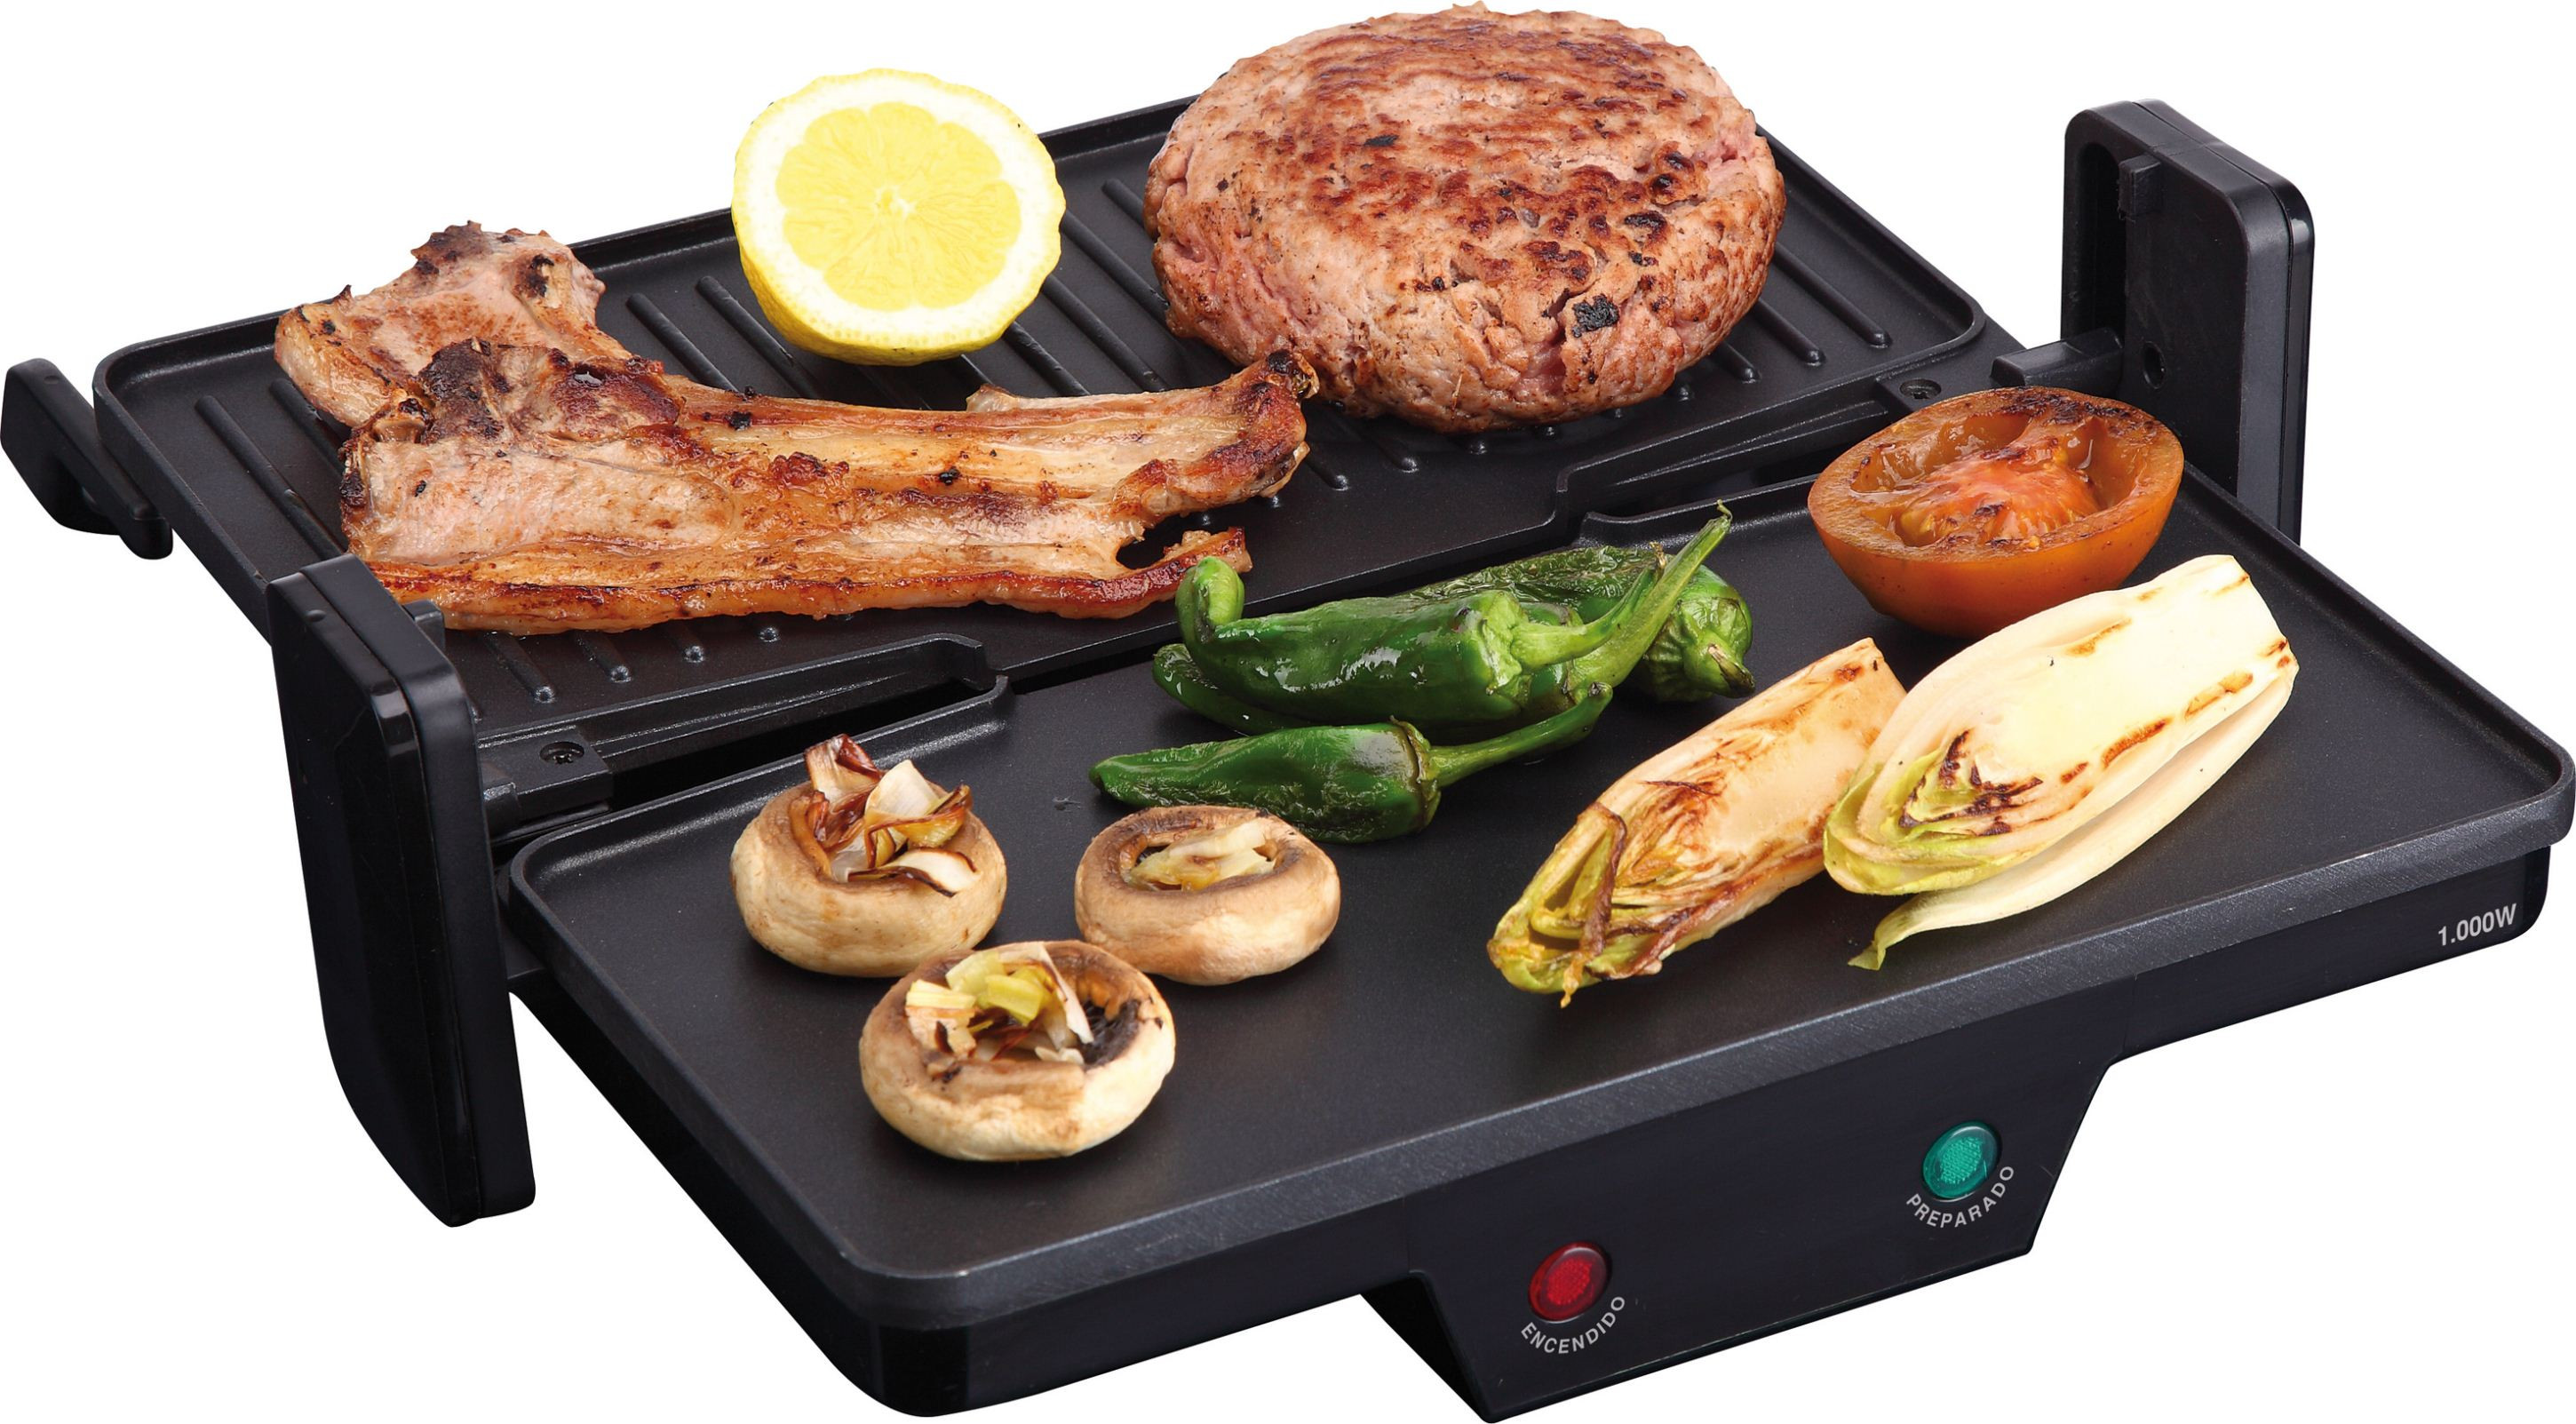 Jata gr266 hermanos p rez for Plancha cocina media markt